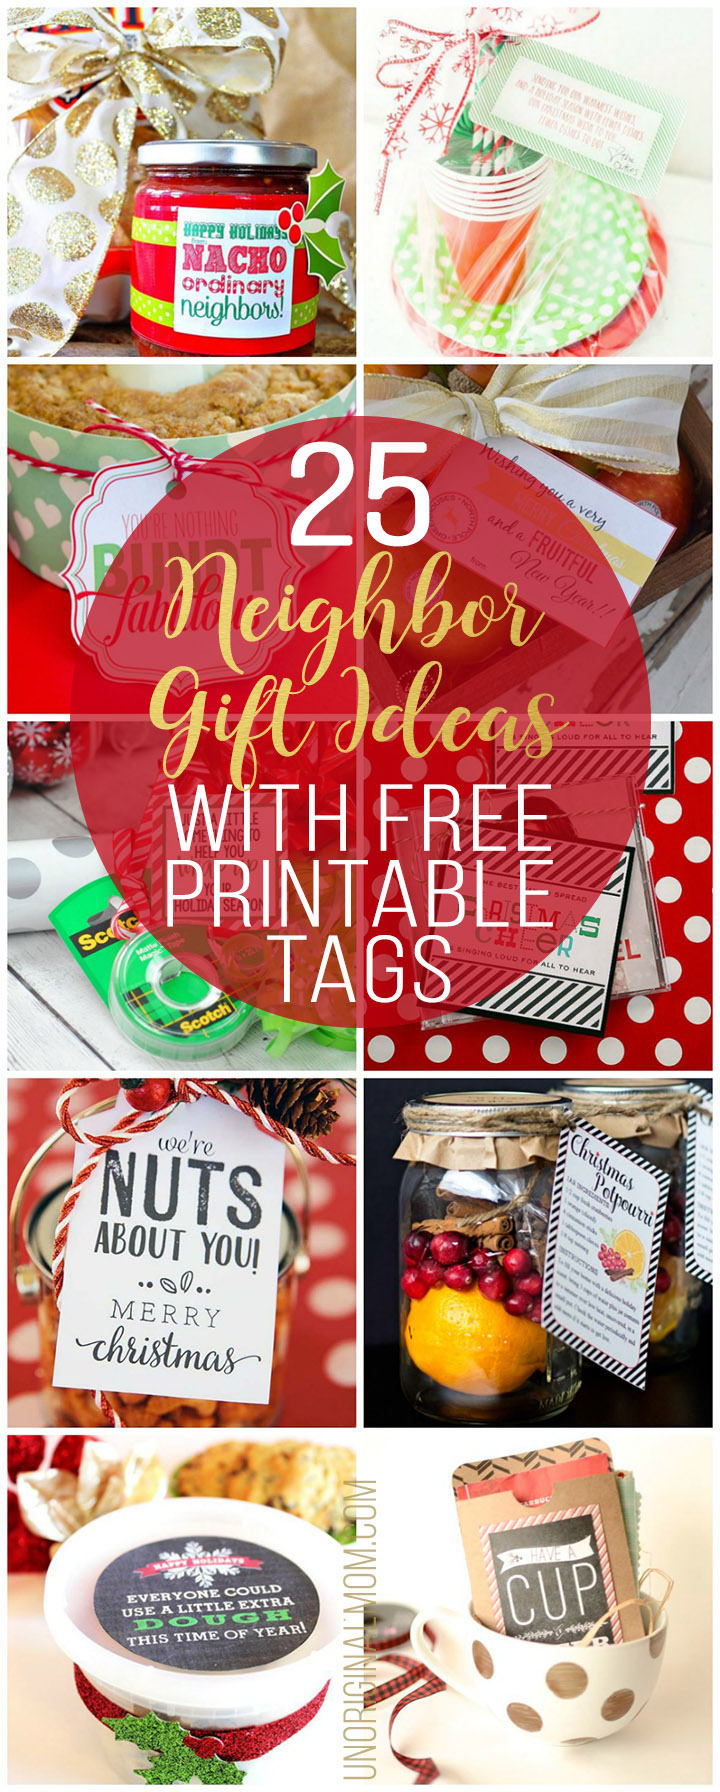 Making neighbor gifts are so easy with these clever and fun ideas - and each one has a free printable! Now to decide which neighbor gift printable tag to use... #handmadechristmas #neighborgifts #freeprintables #neighborgiftideas #teachergifts #myhandmadechristmas